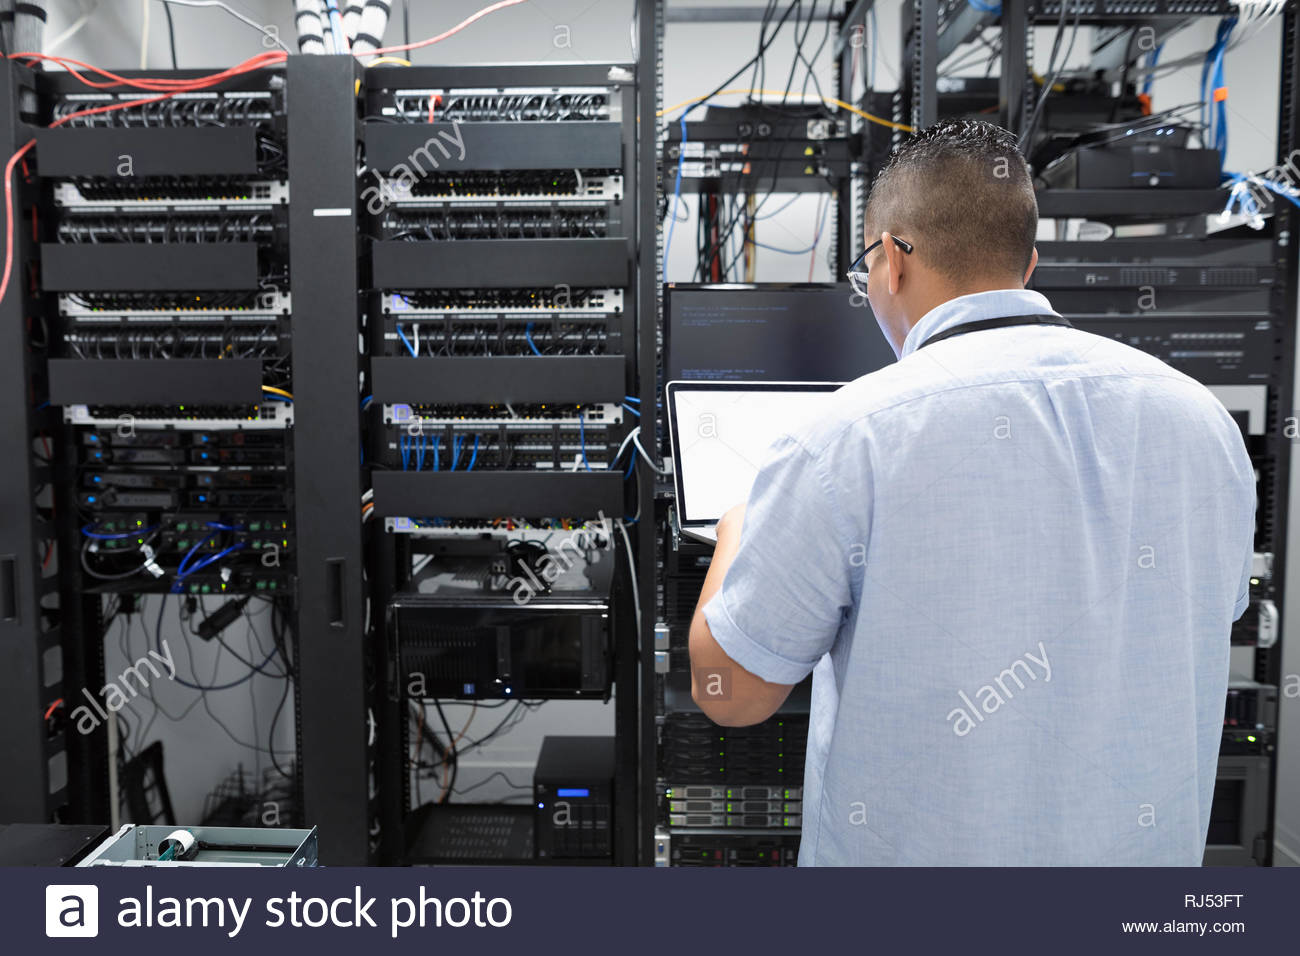 IT technician using laptop in server room - Stock Image